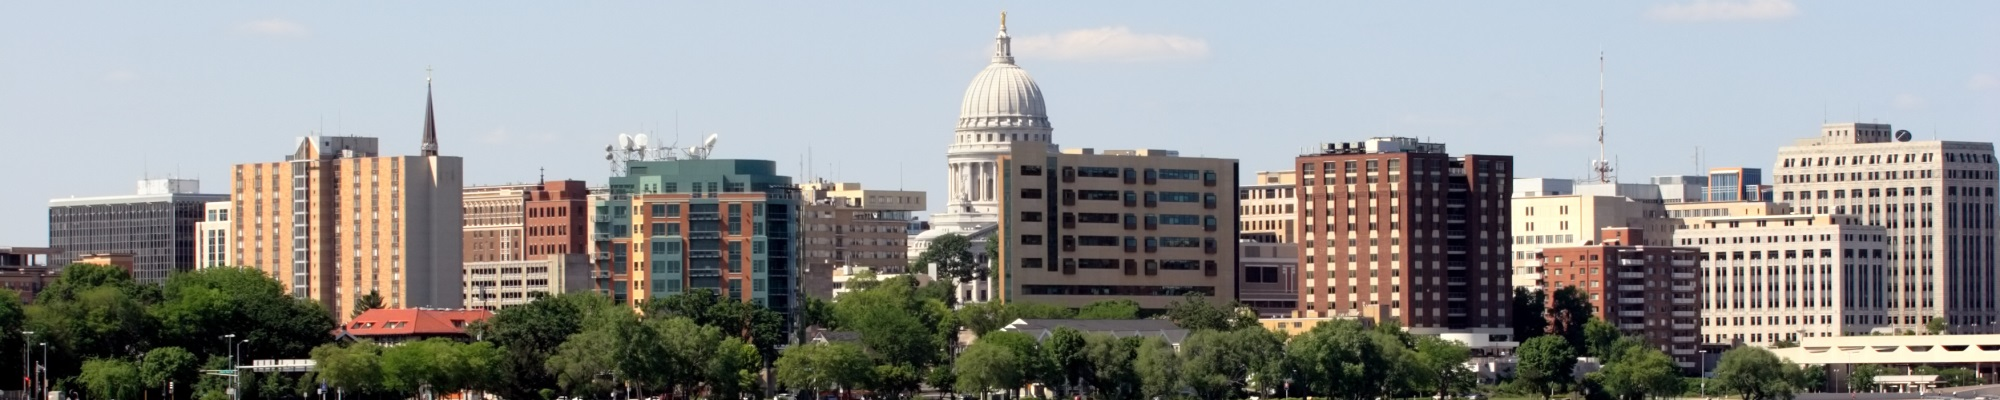 Madison Skyline during the Day